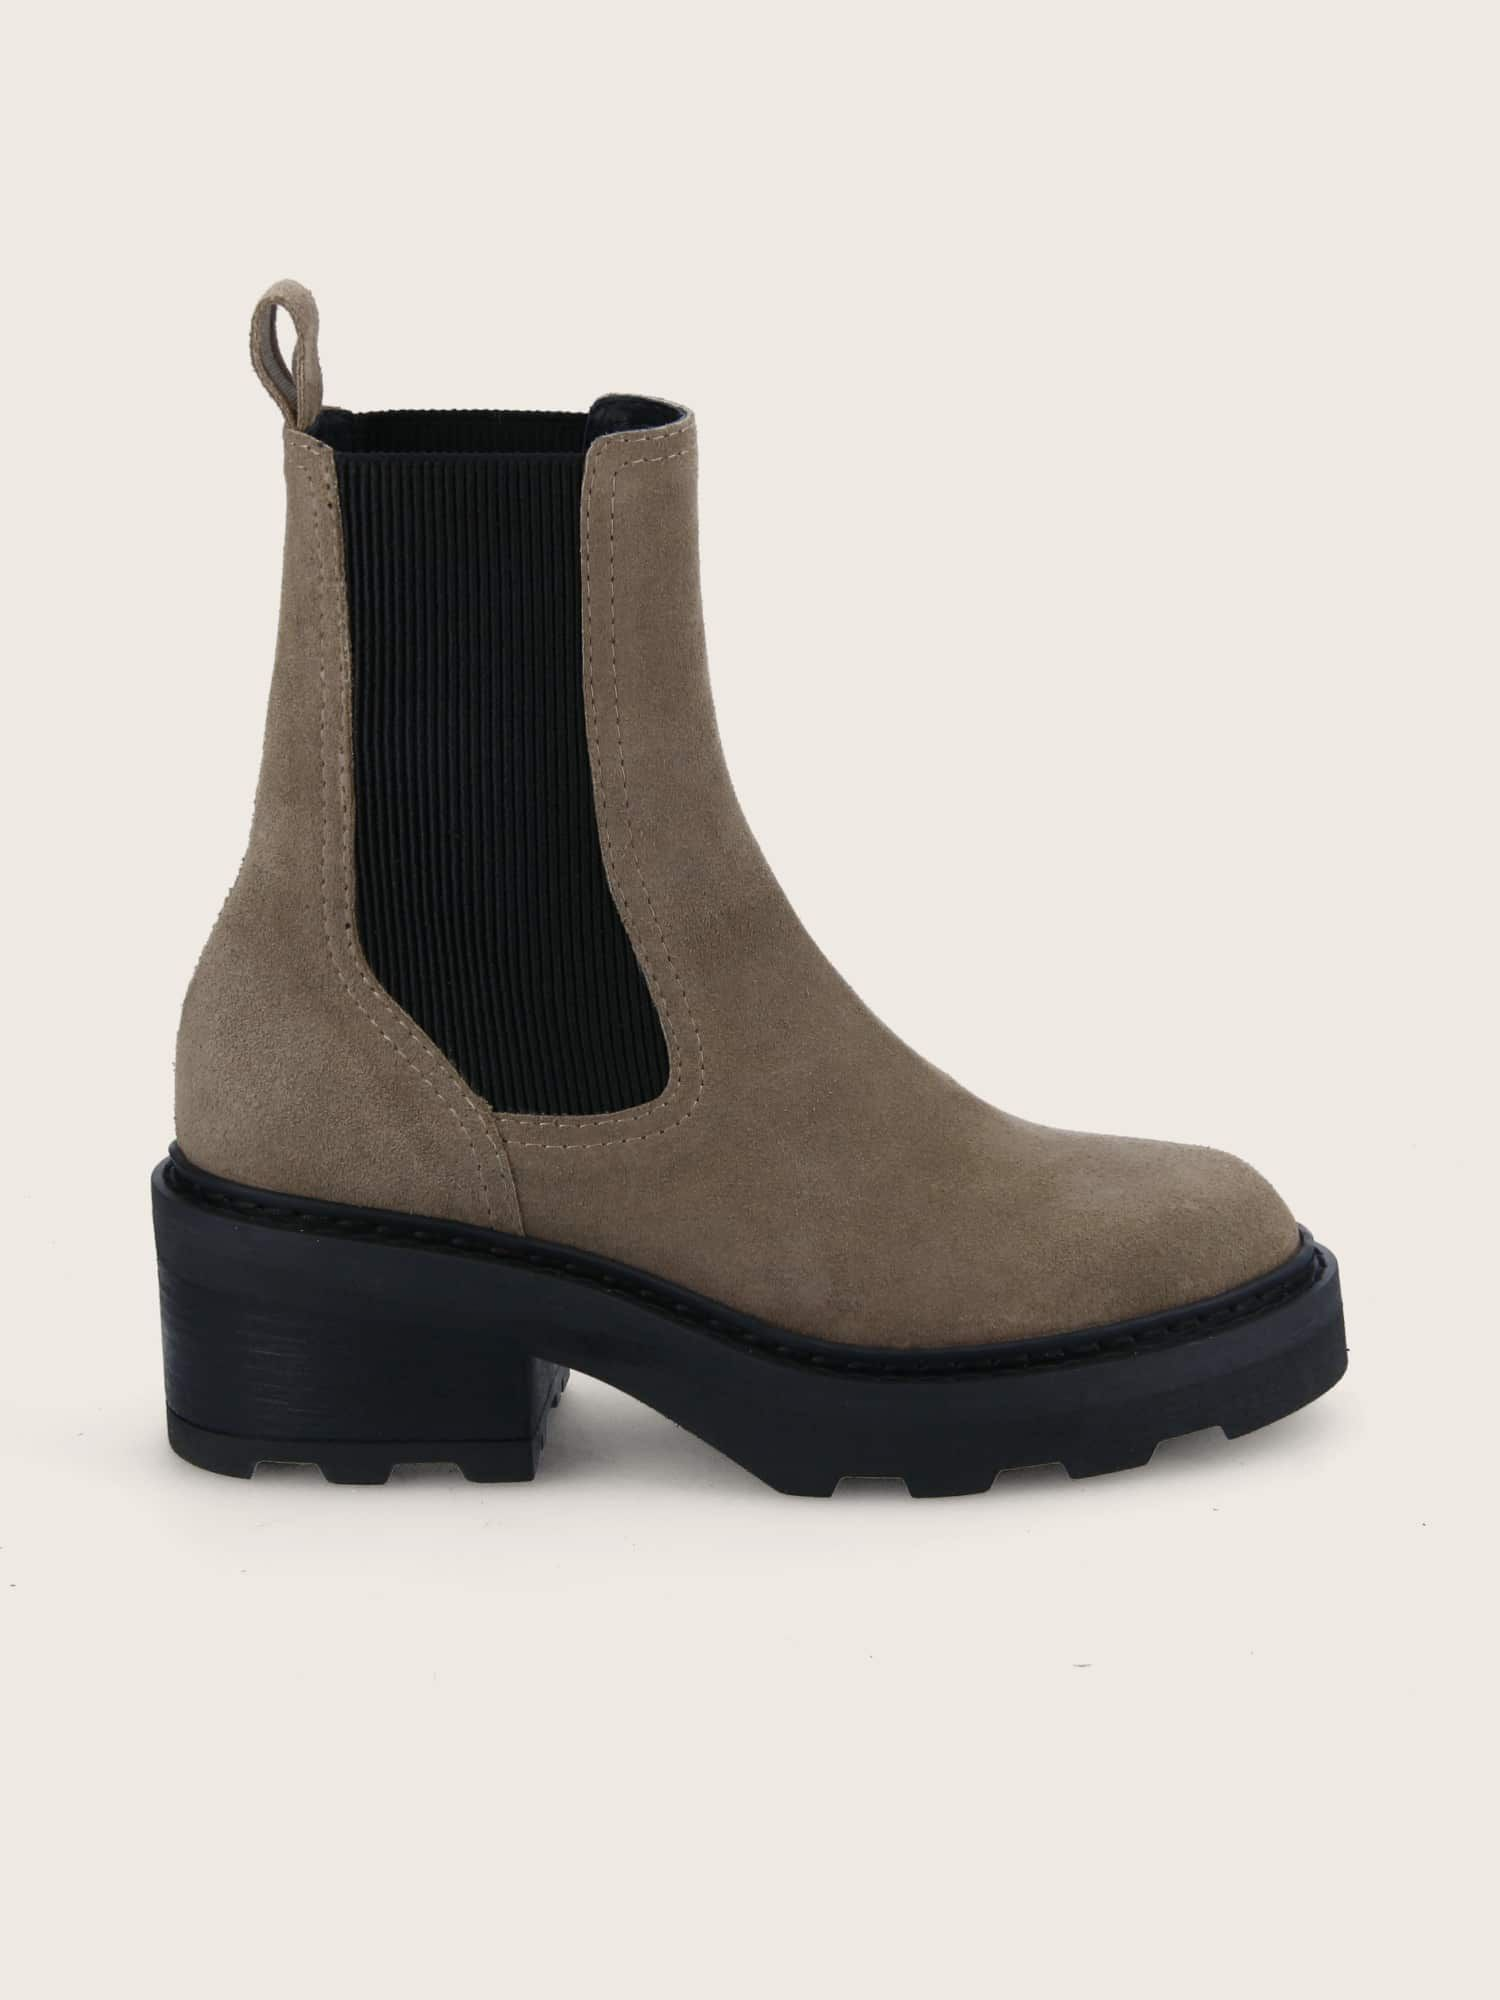 schmoove.fr MIKE CHELSEA - OIL SUEDE - TAUPE